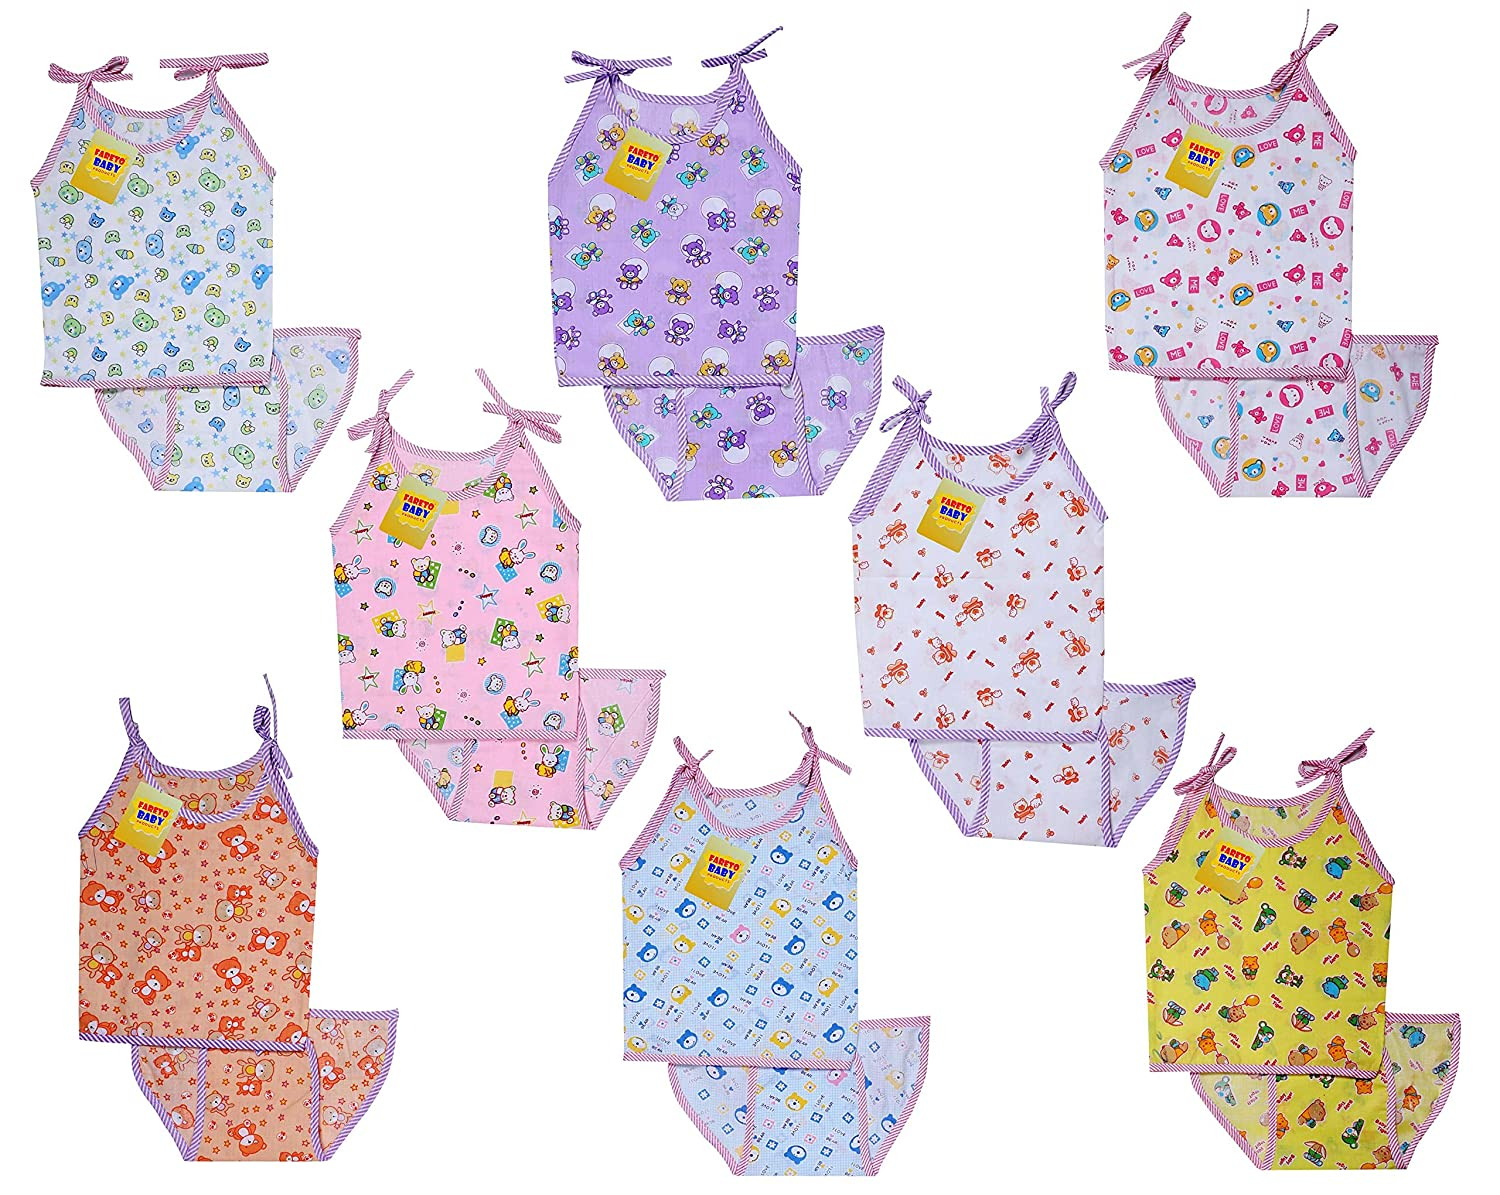 Importing baby clothes from Turkey